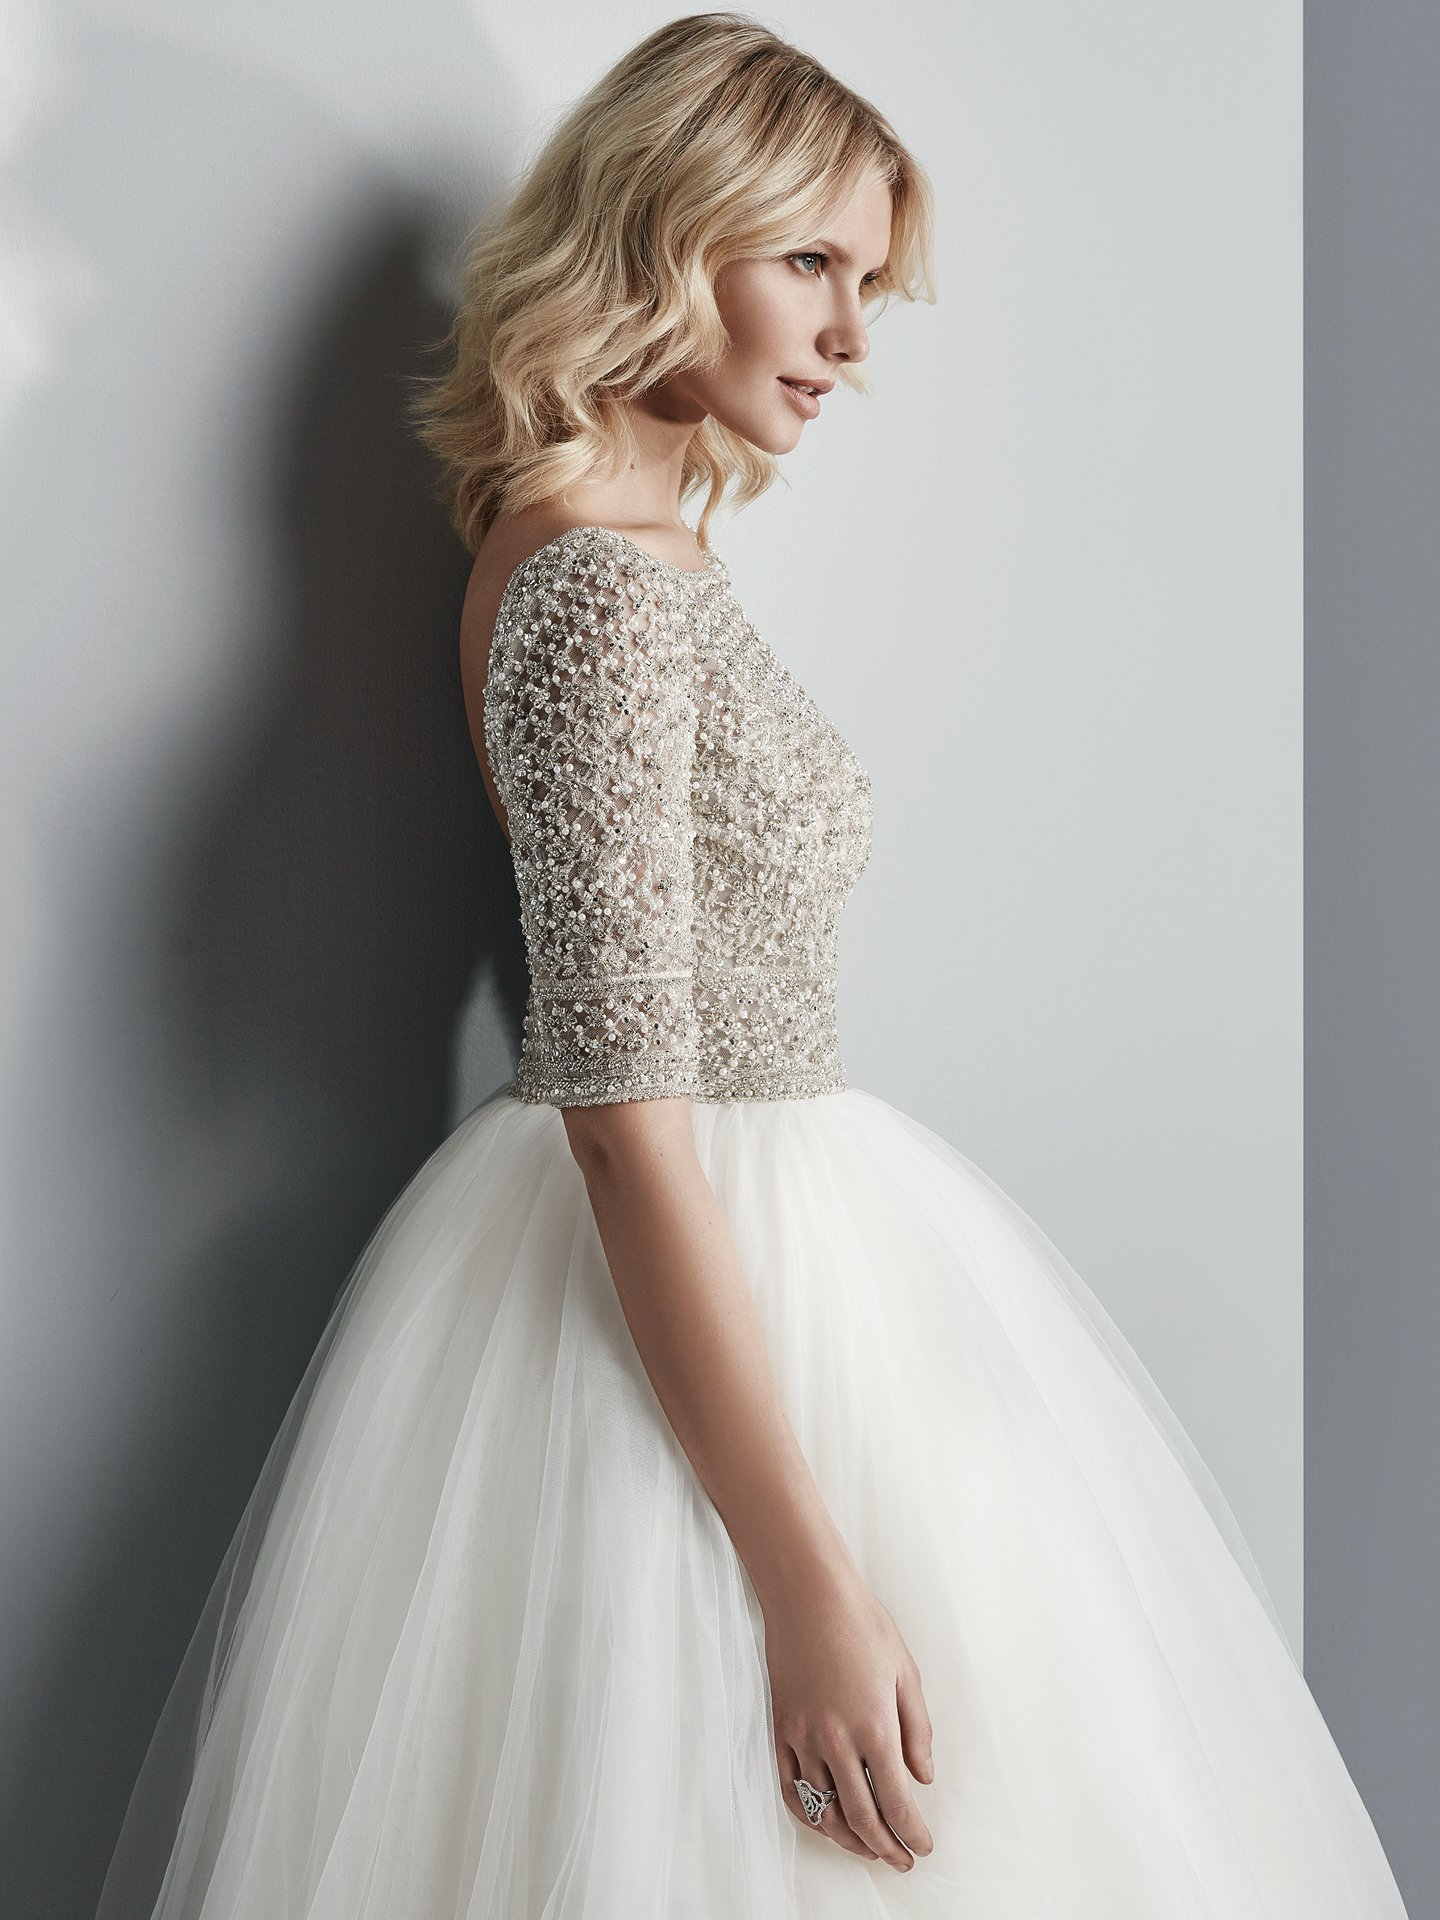 Wedding Gowns that Look Great in Photos - Allen sparkly ball gown wedding dress by Sottero and Midgley